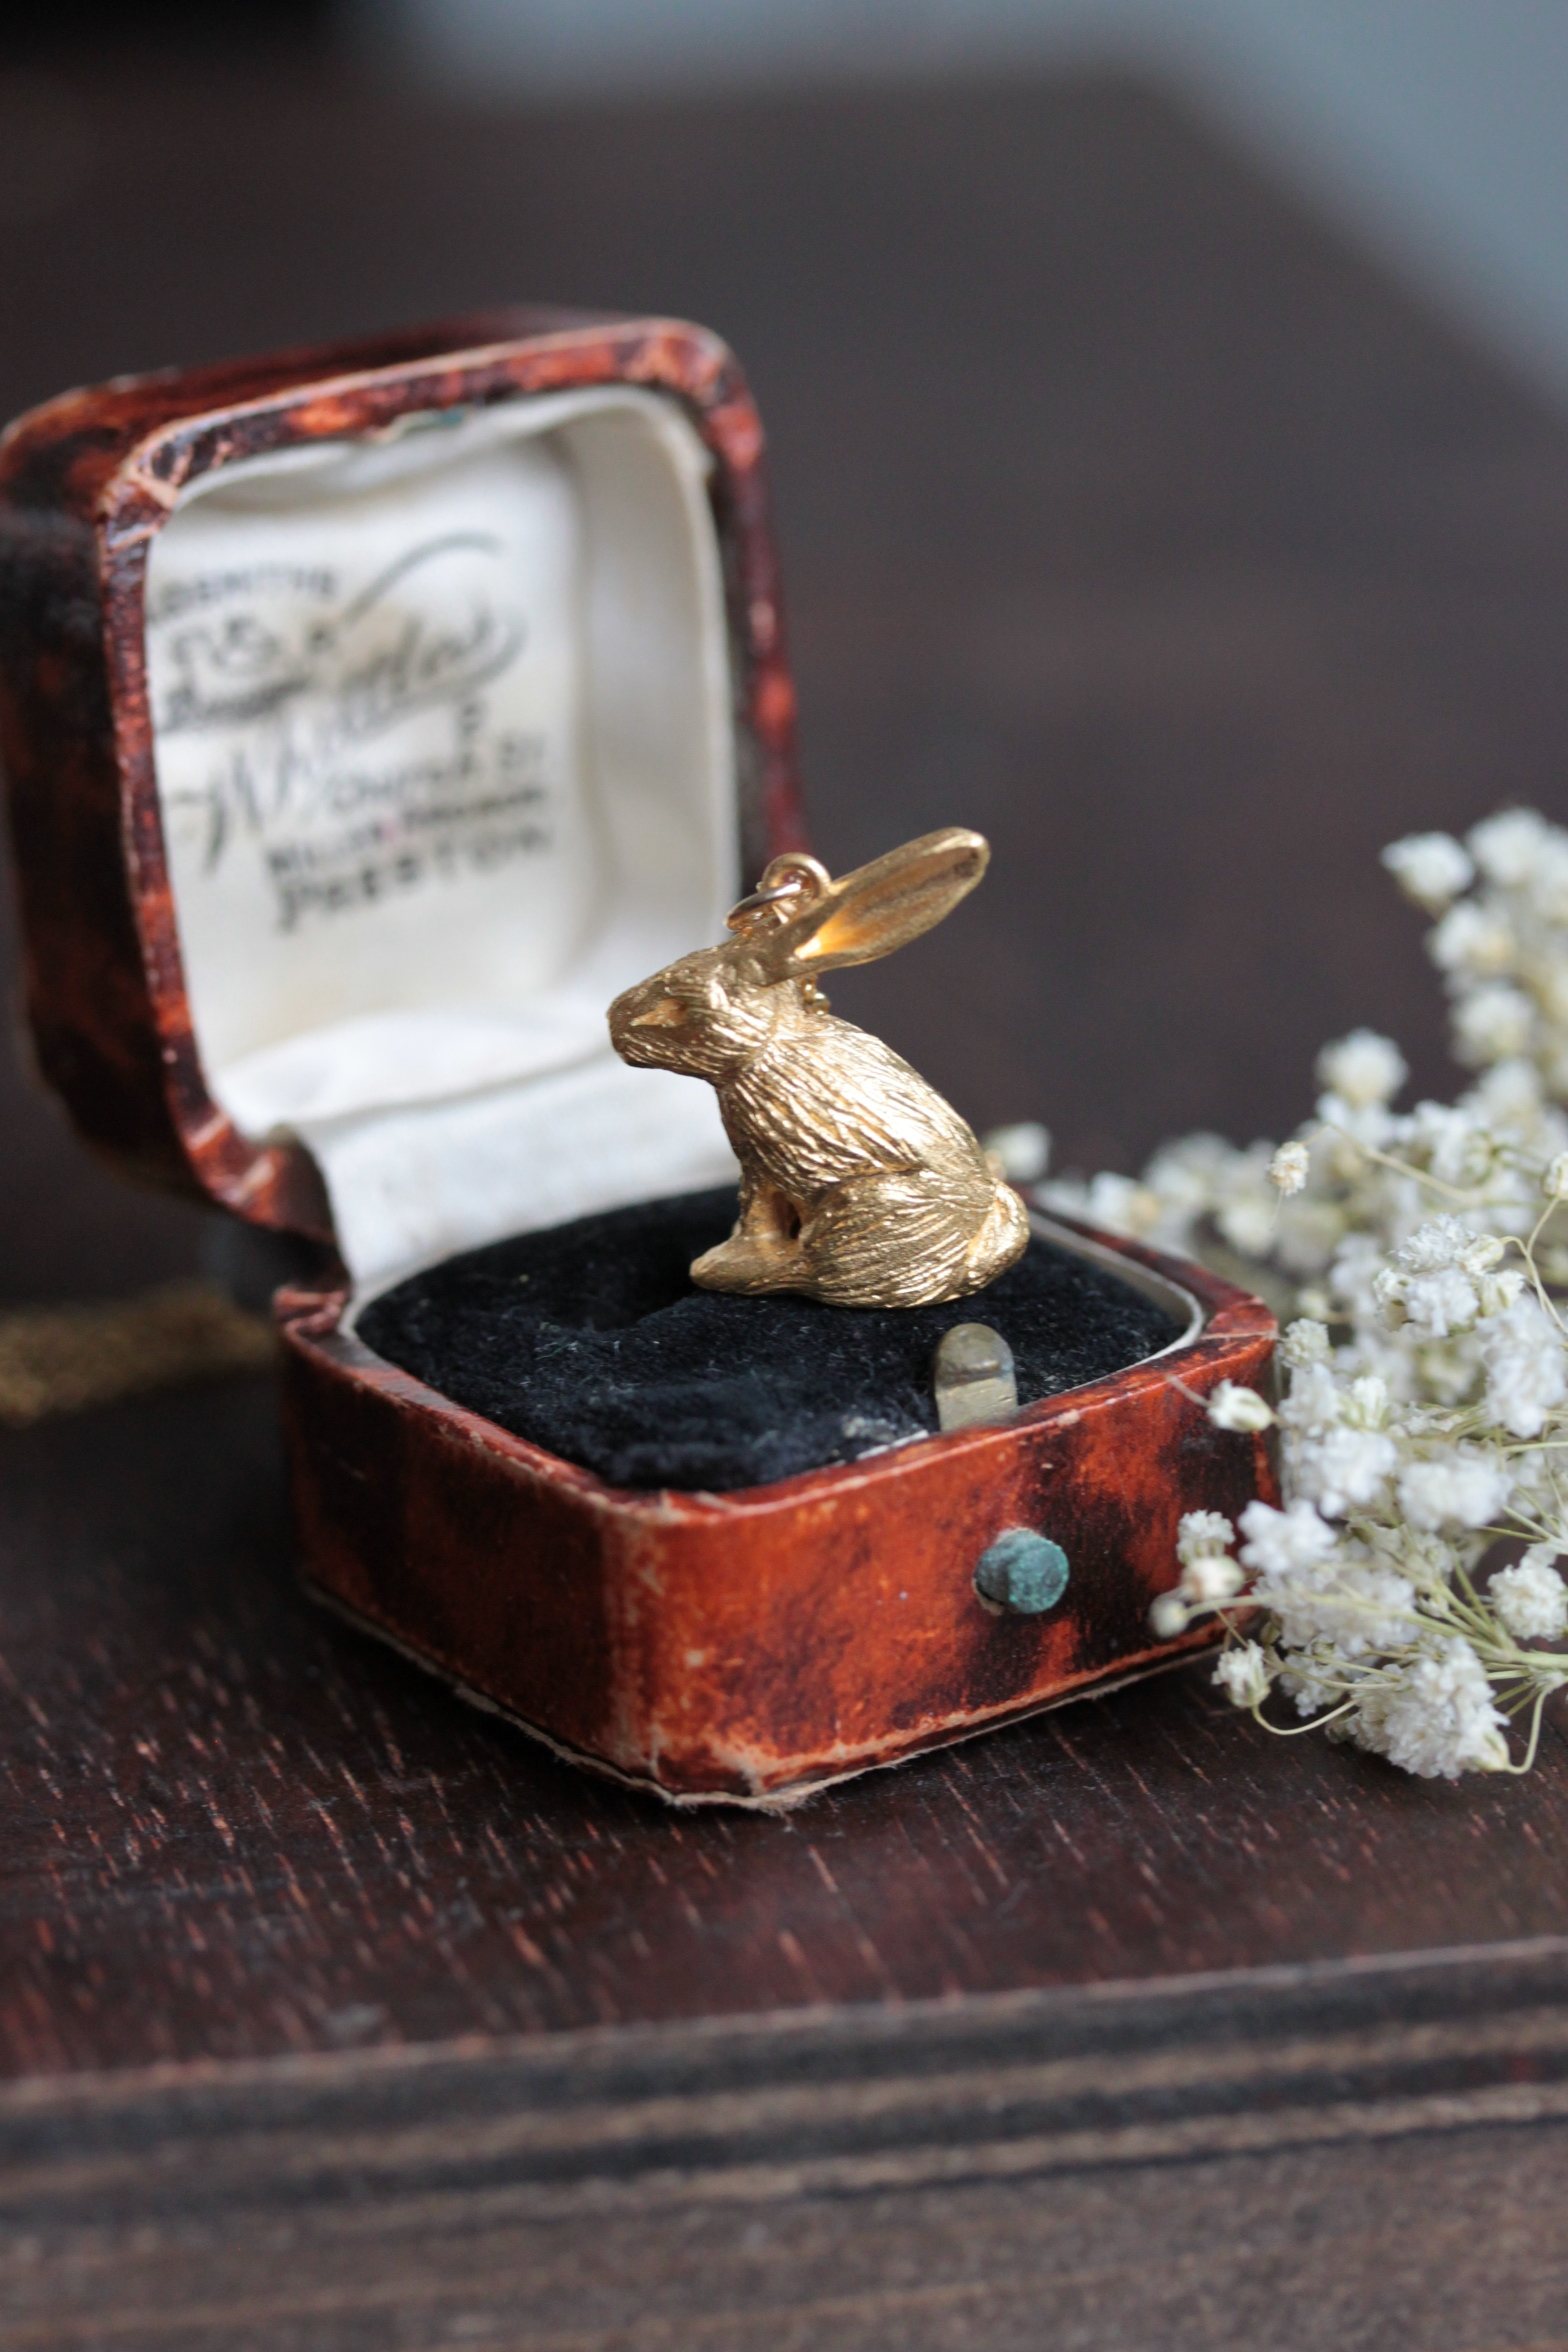 Mister rabbit glimmering in yellow gold.